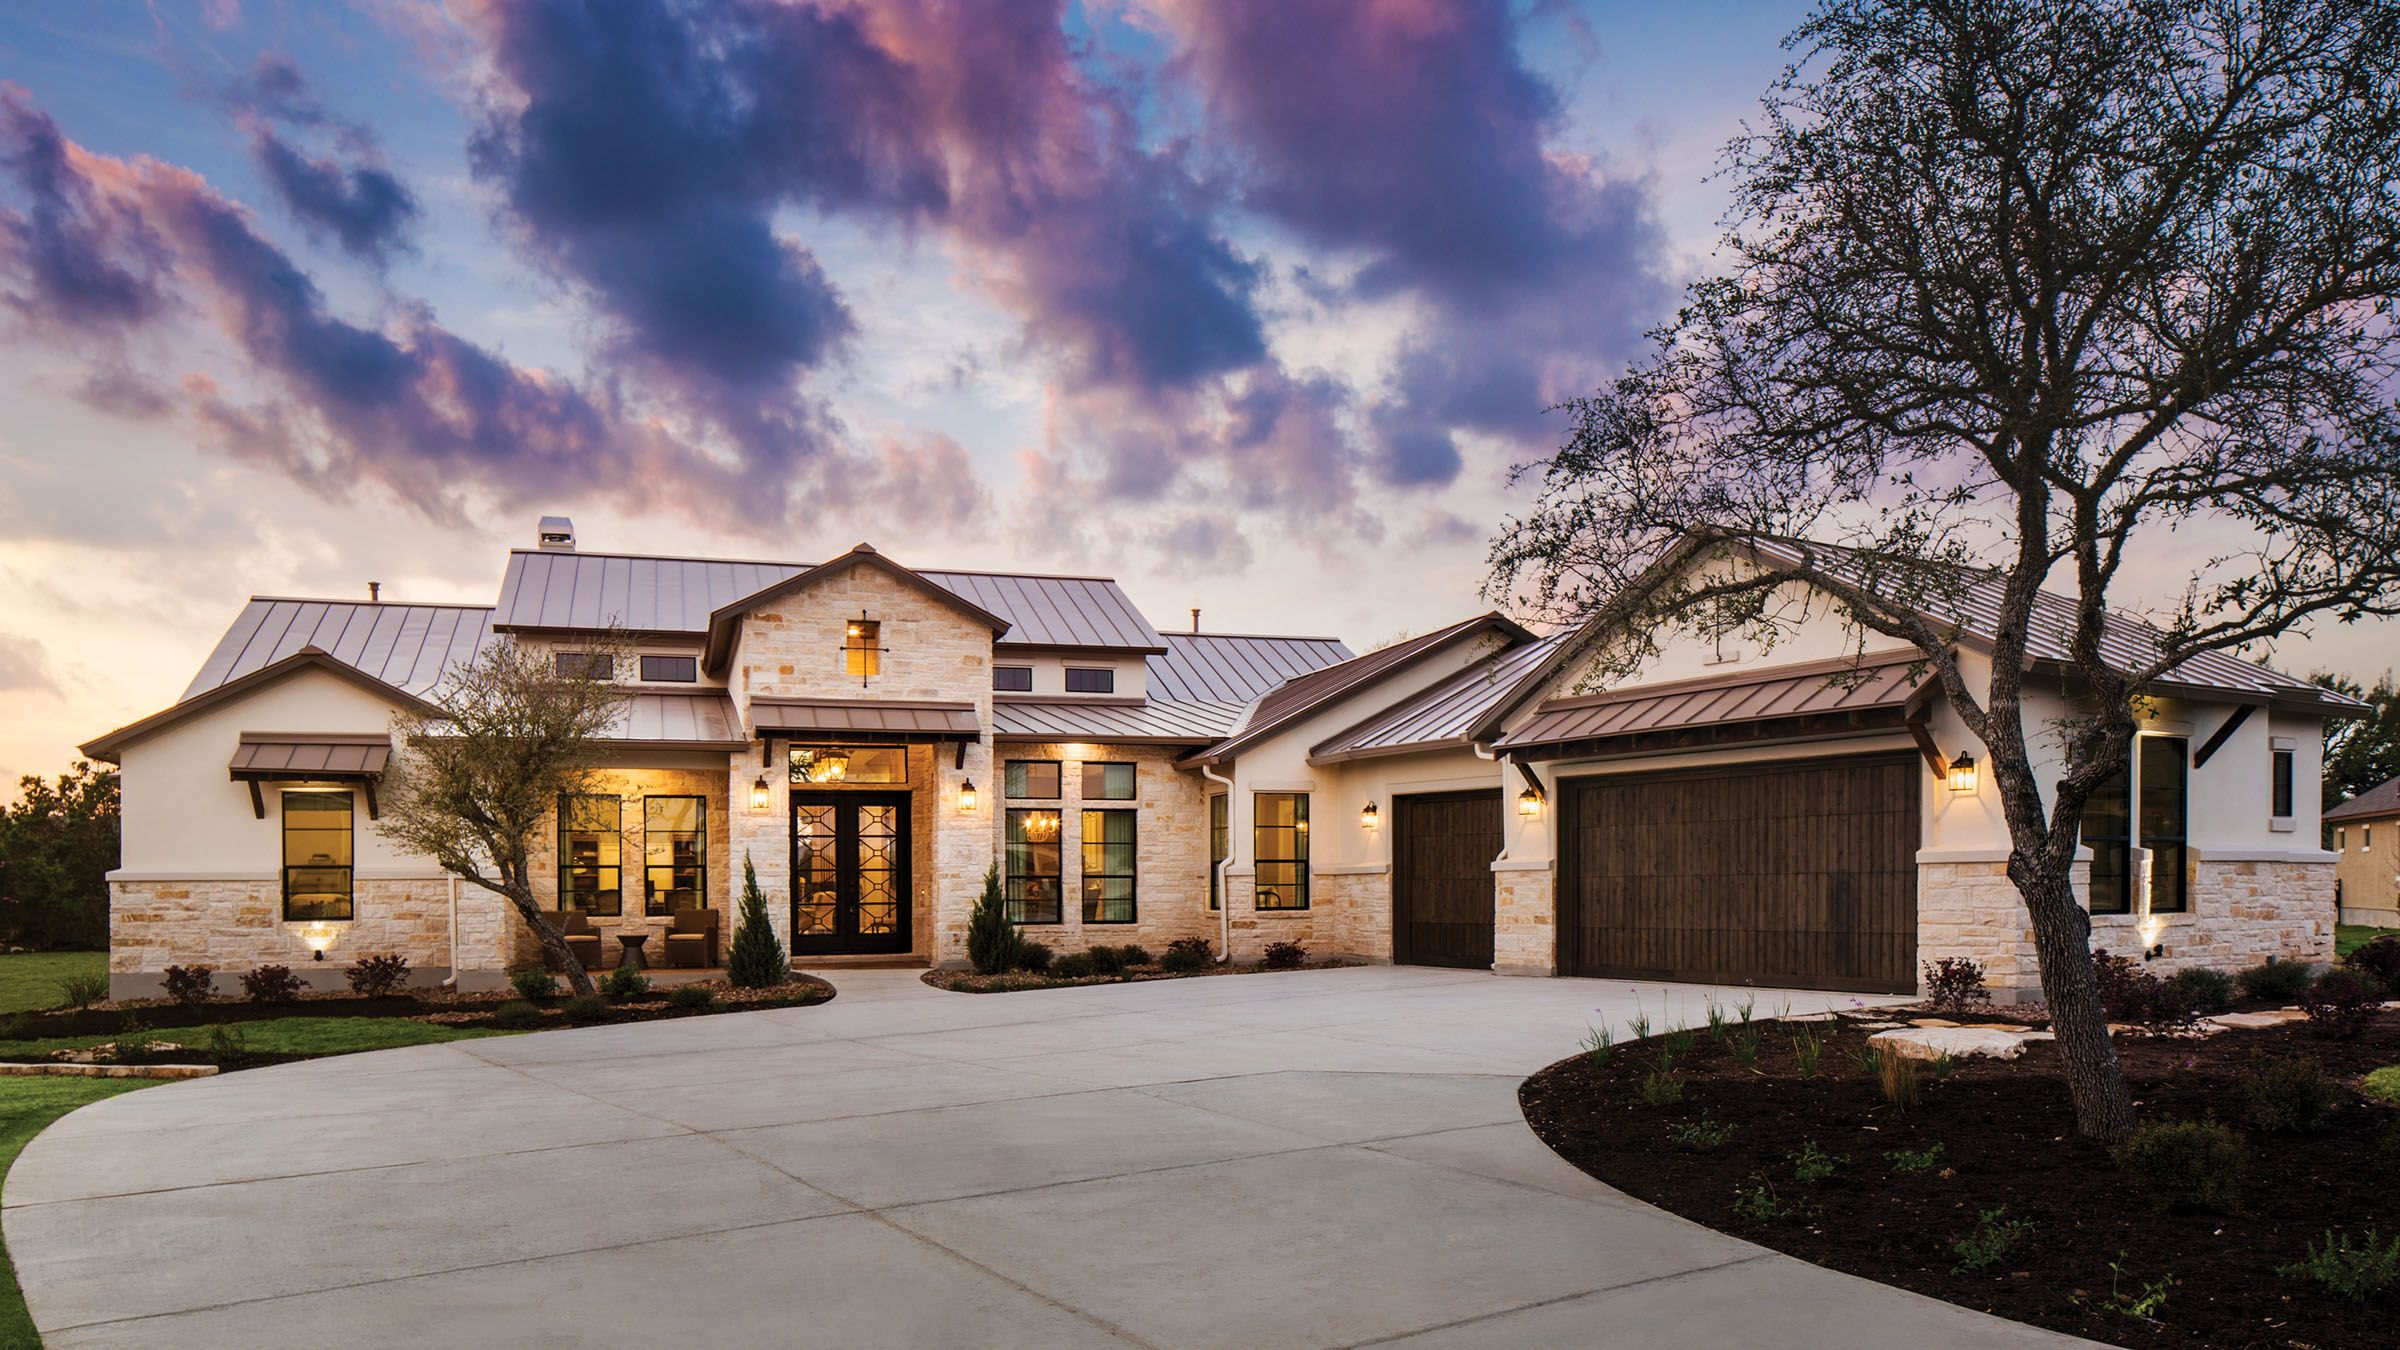 College Station Model Home Park Texas Casual Cottages In 2020 Country Home Exteriors Hill Country Homes Texas Hill Country House Plans